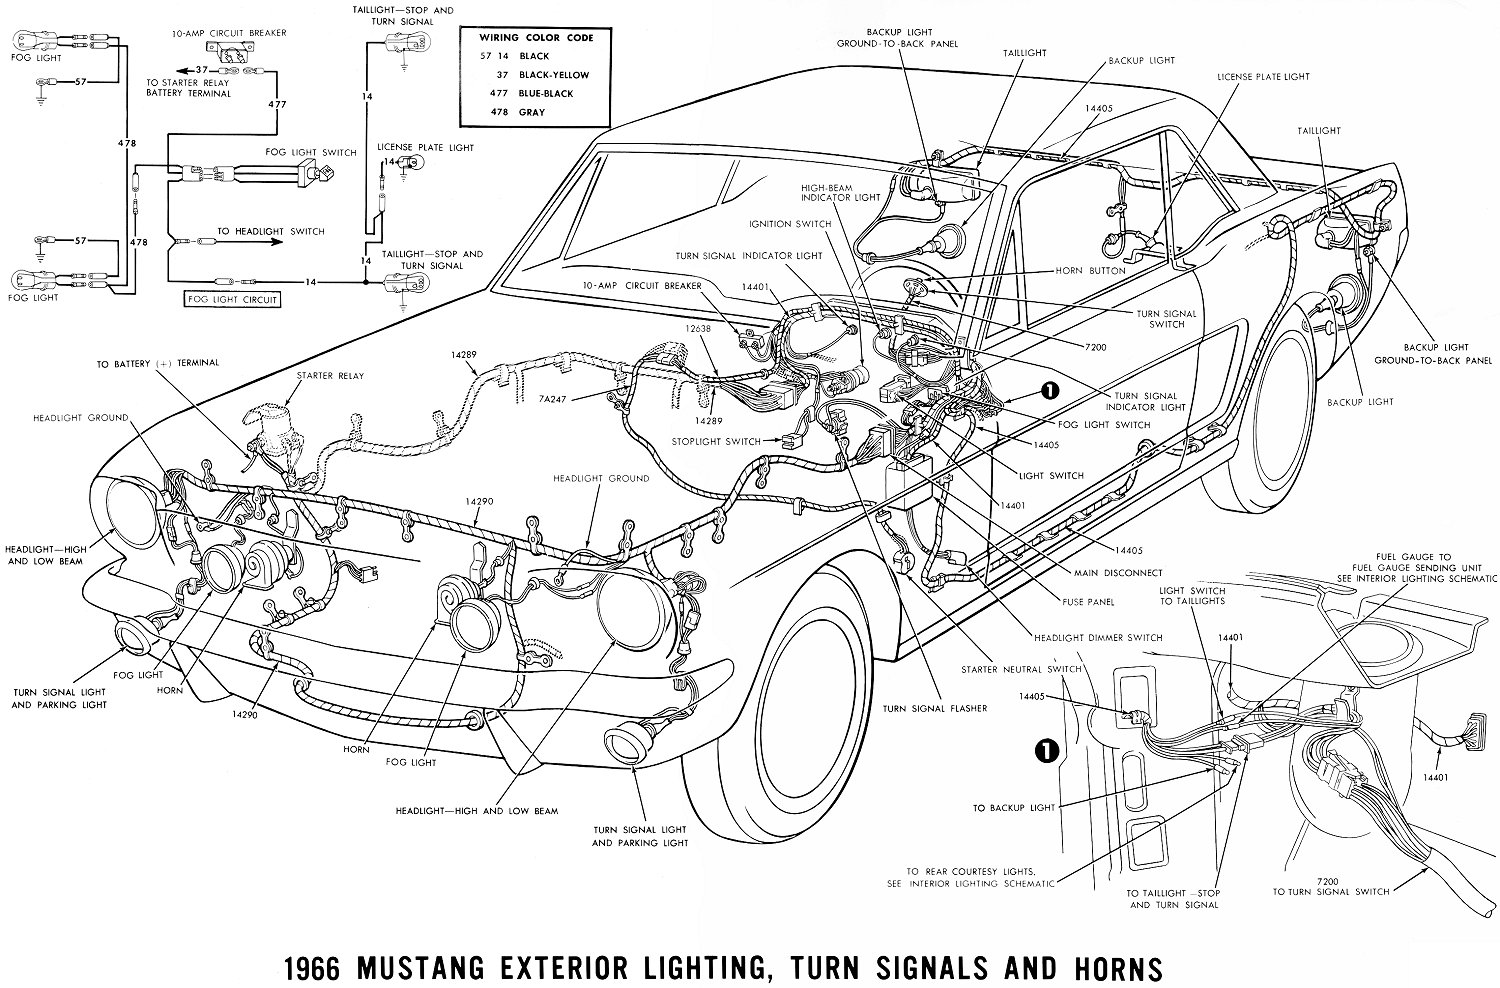 hight resolution of 66 exterior lighting detail 66 exterior lighting schematics vintage mustang wiring diagrams